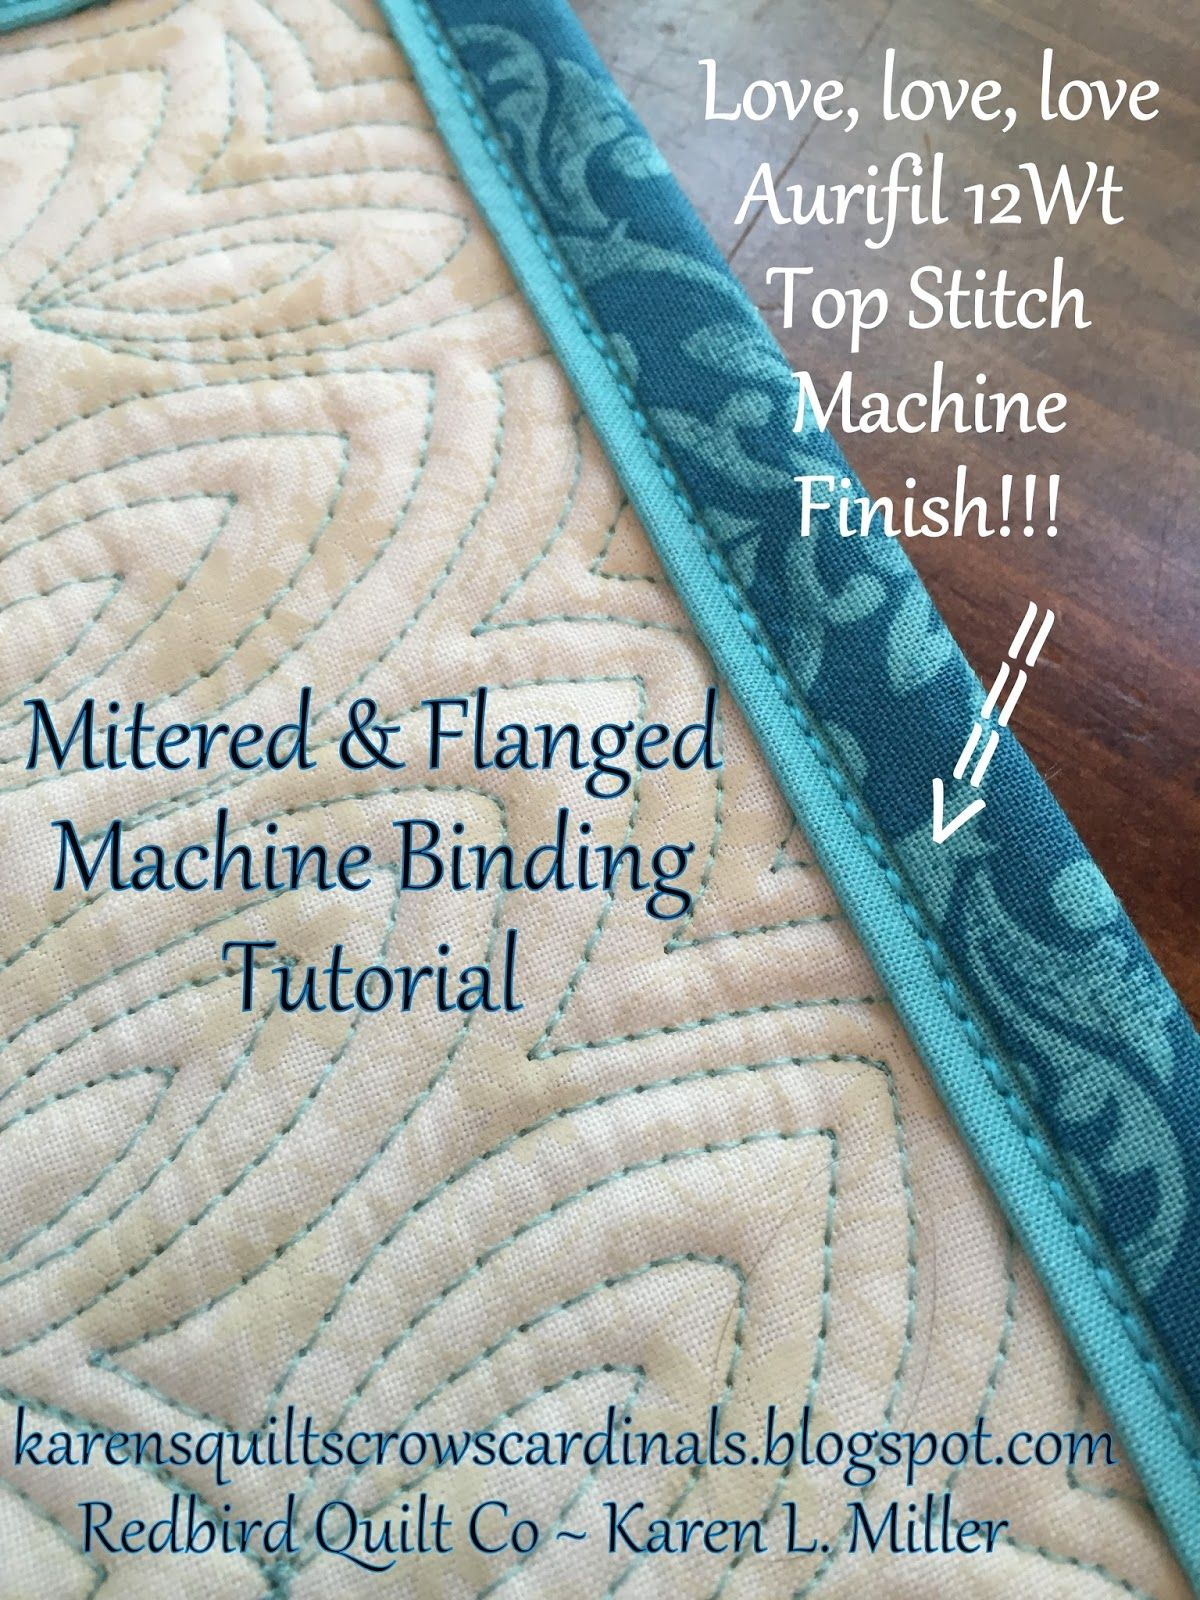 How to bind a quilt: foolproof tips for great results | quilting.